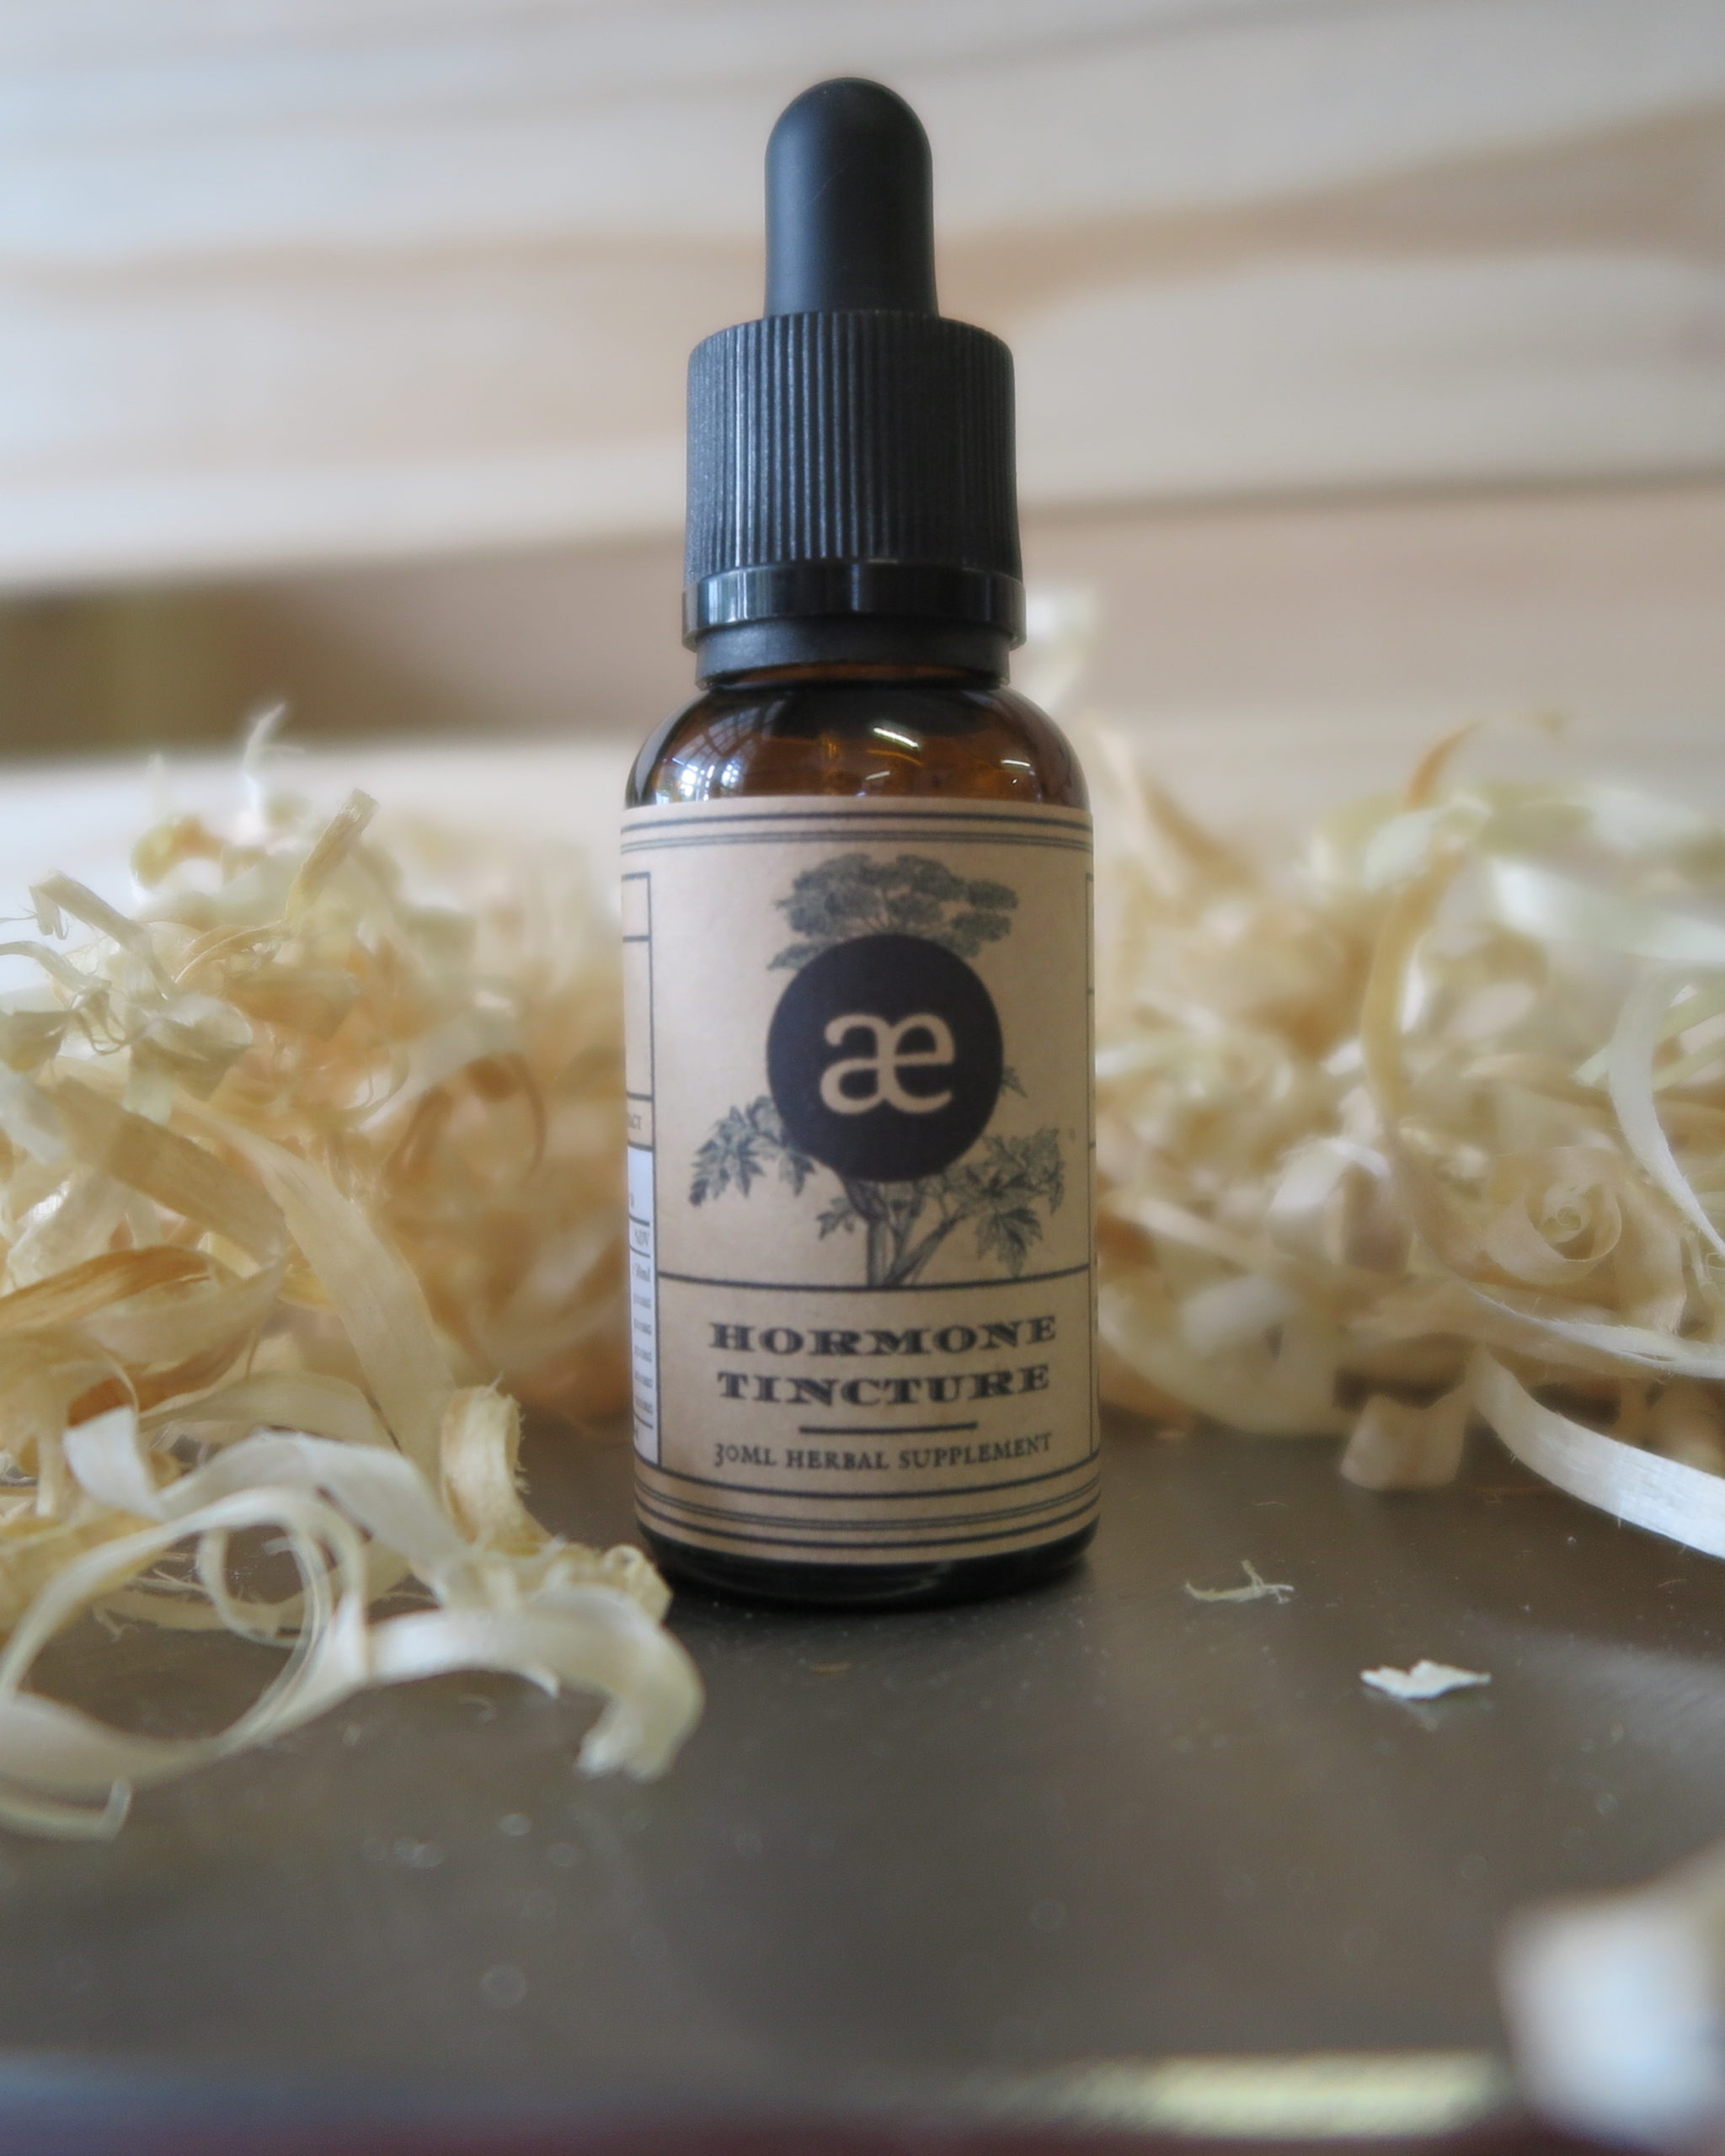 Aether Hormone Tincture